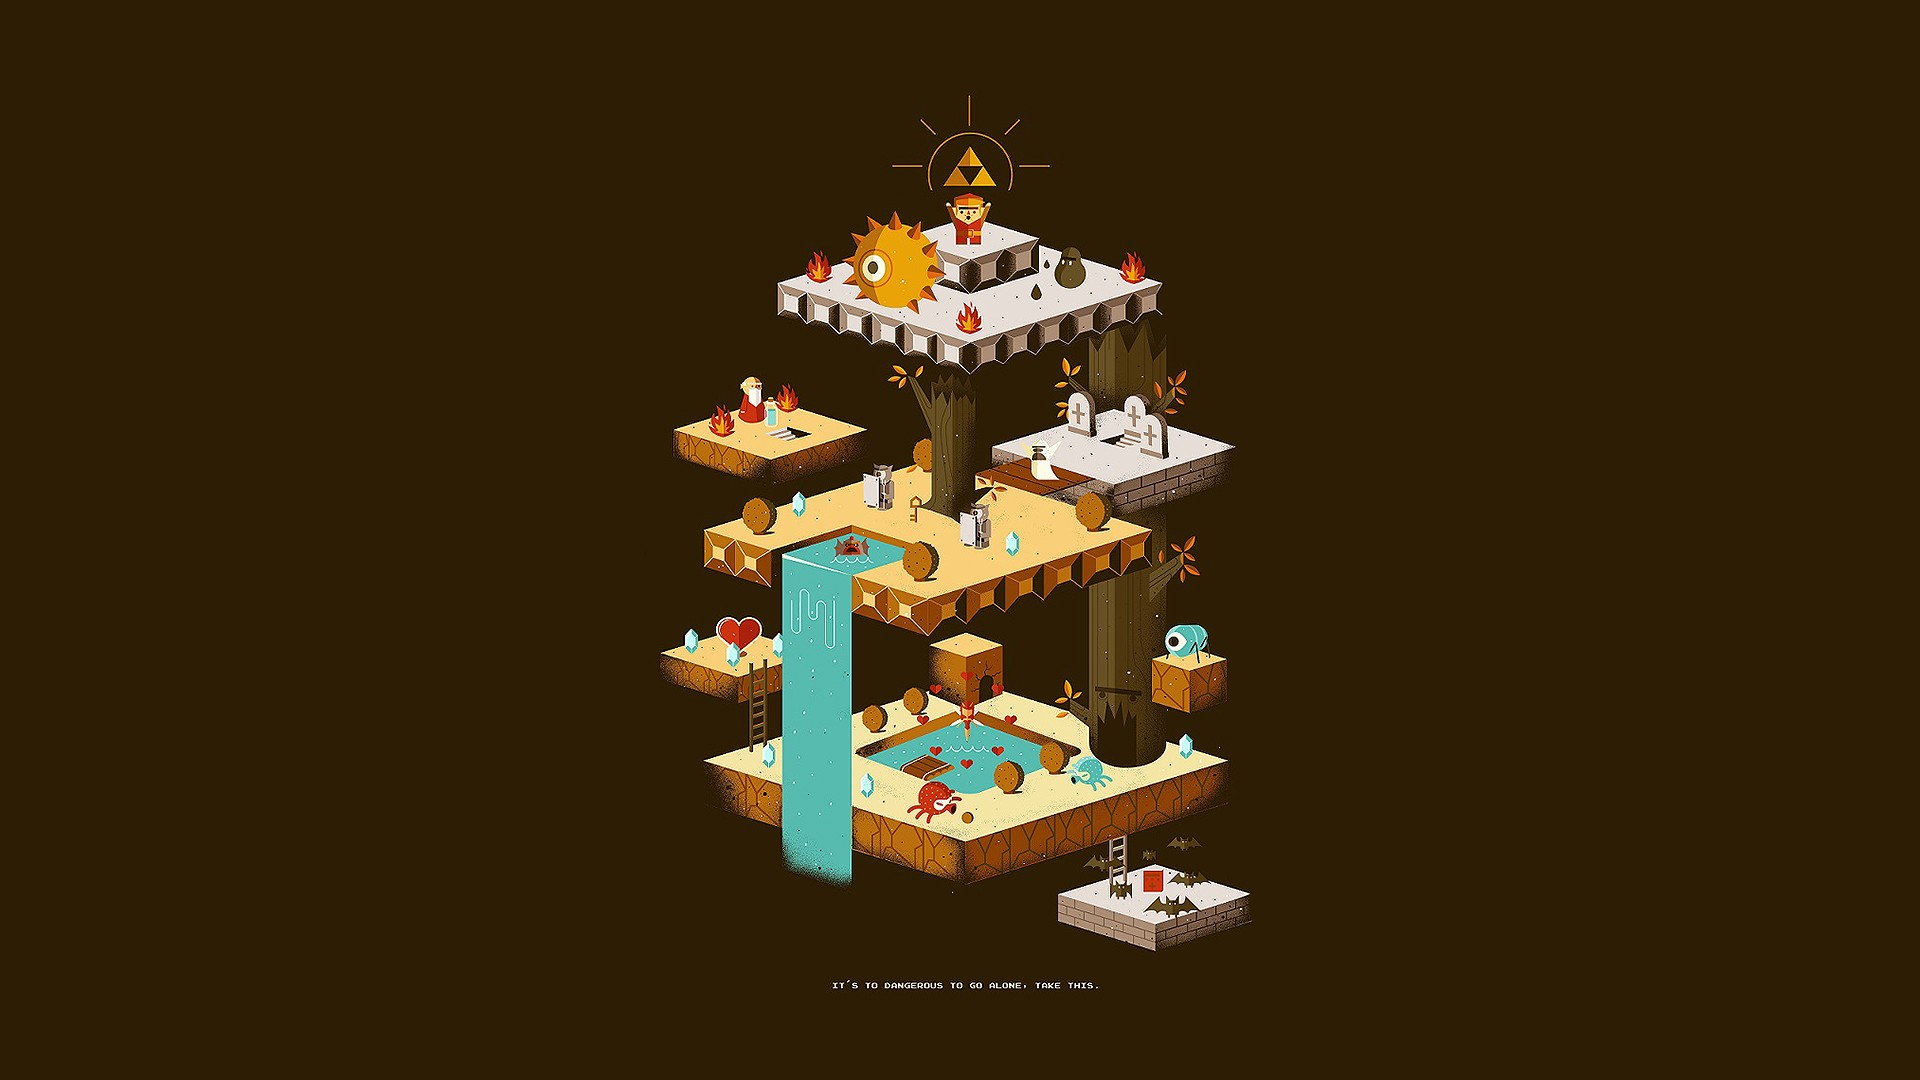 47 Retro Games Wallpaper Hd On Wallpapersafari